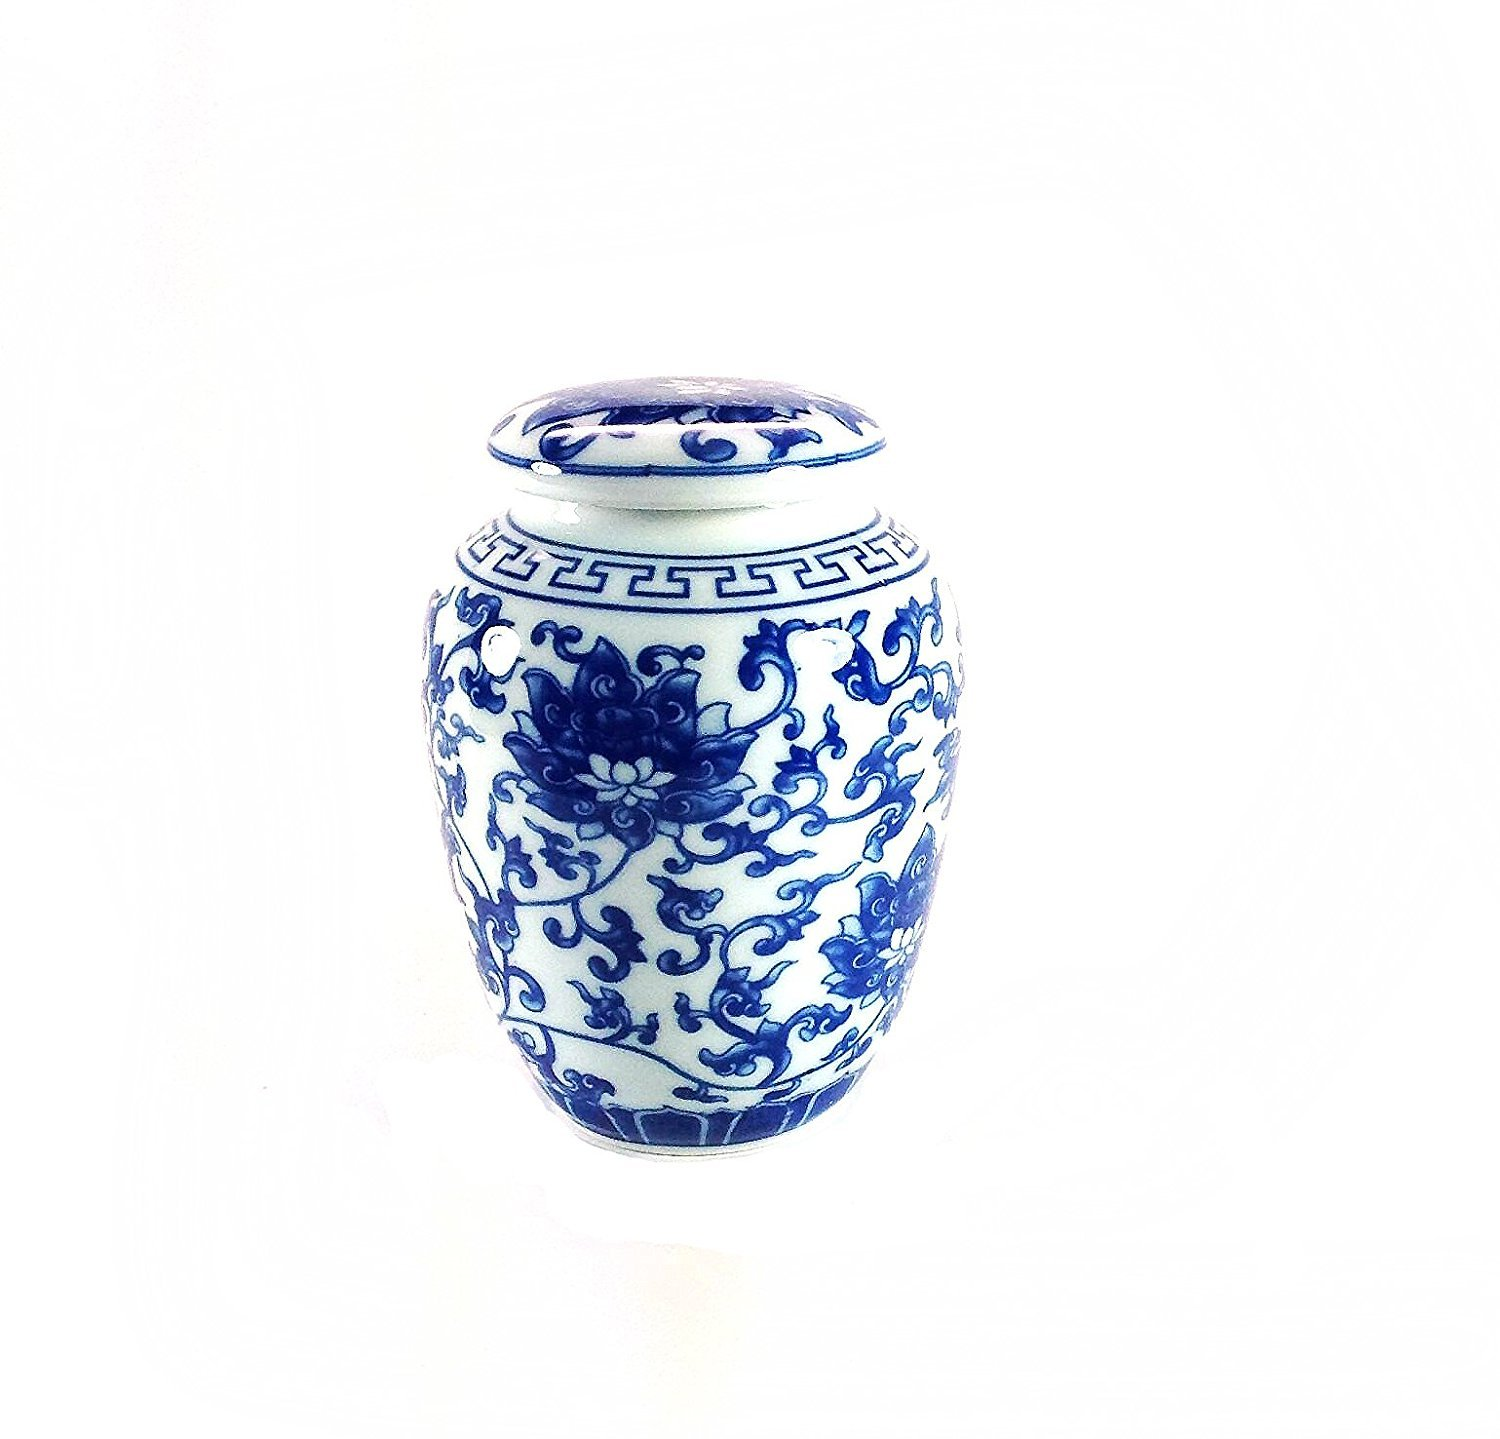 Decorative Traditional Asian Blue and White Lotus Pattern Porcelain Tea Storage Container or Display Unit (Small) U.S.Sourcing Inc. GW-CBW108